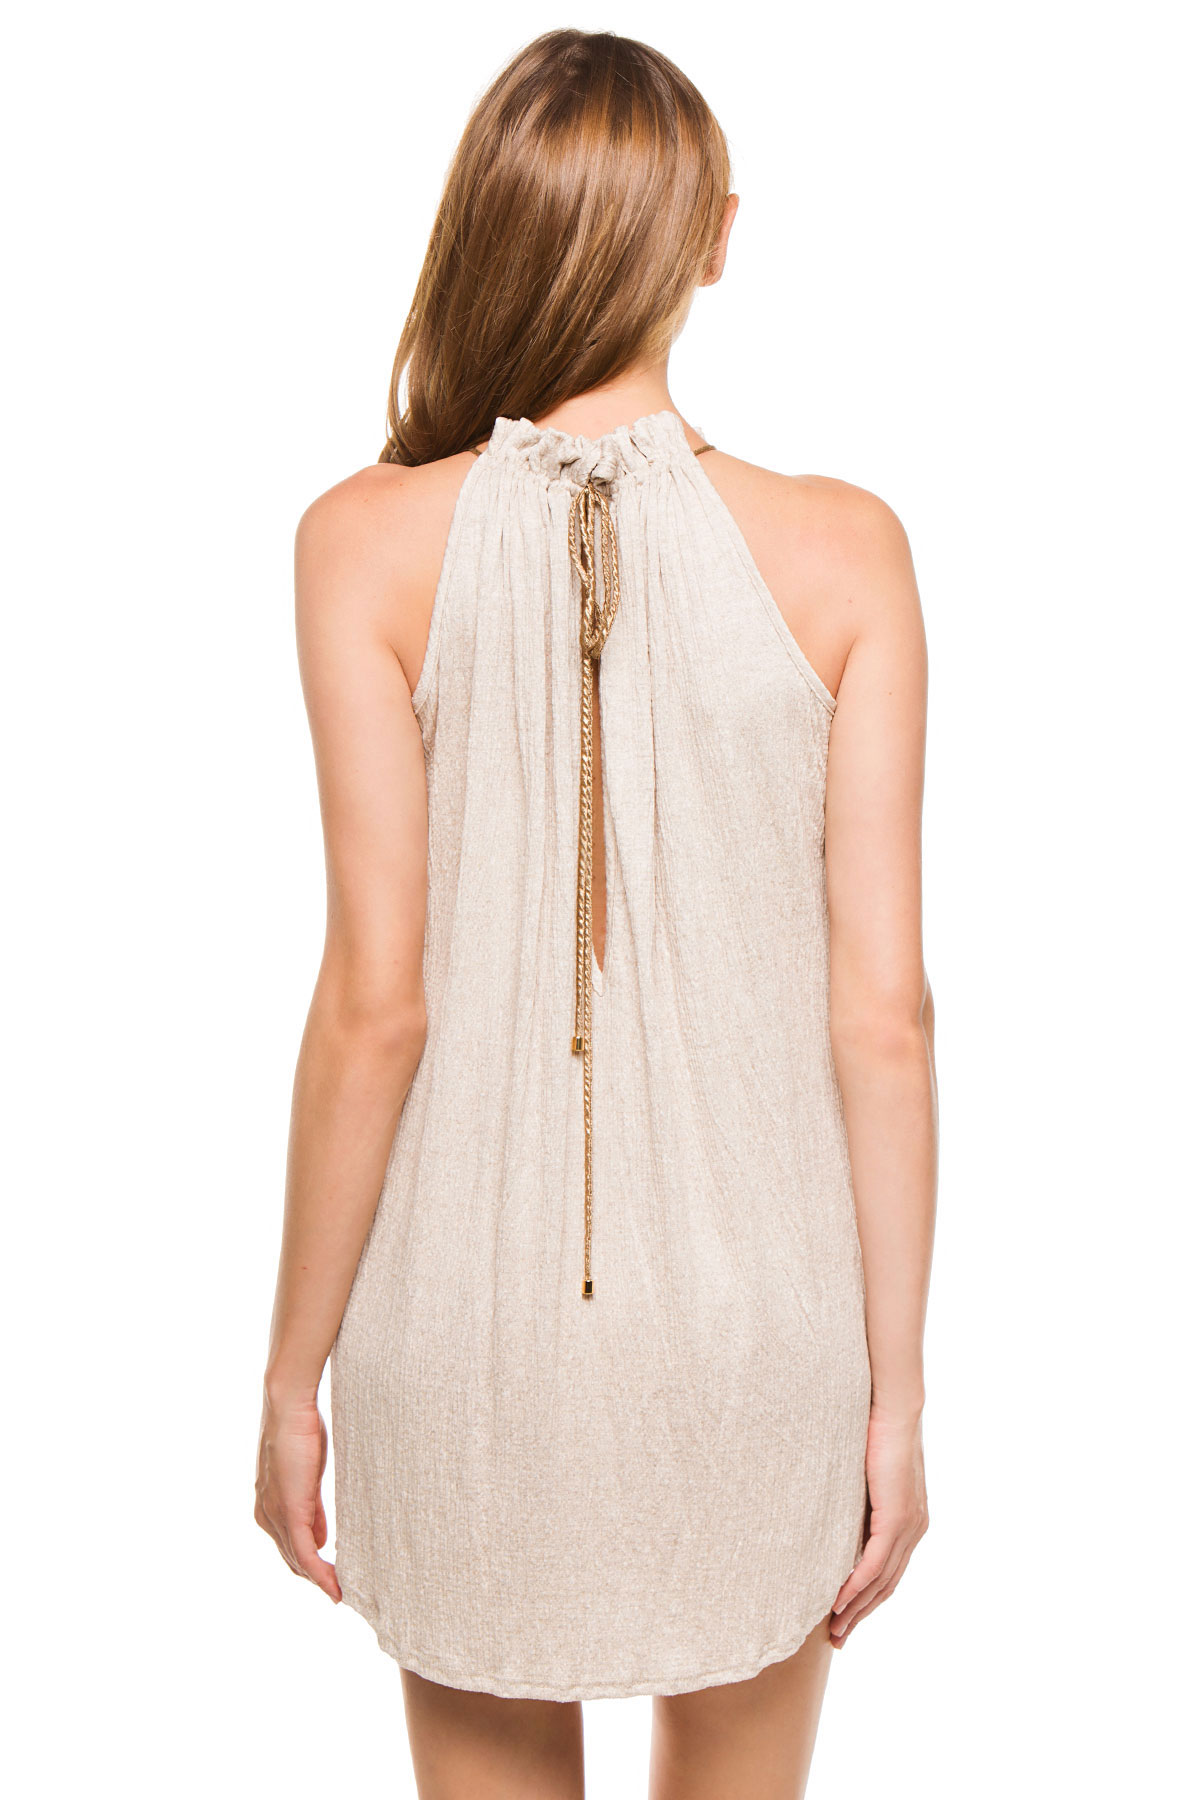 Gathered High Neck Short Dress - Taupe 2